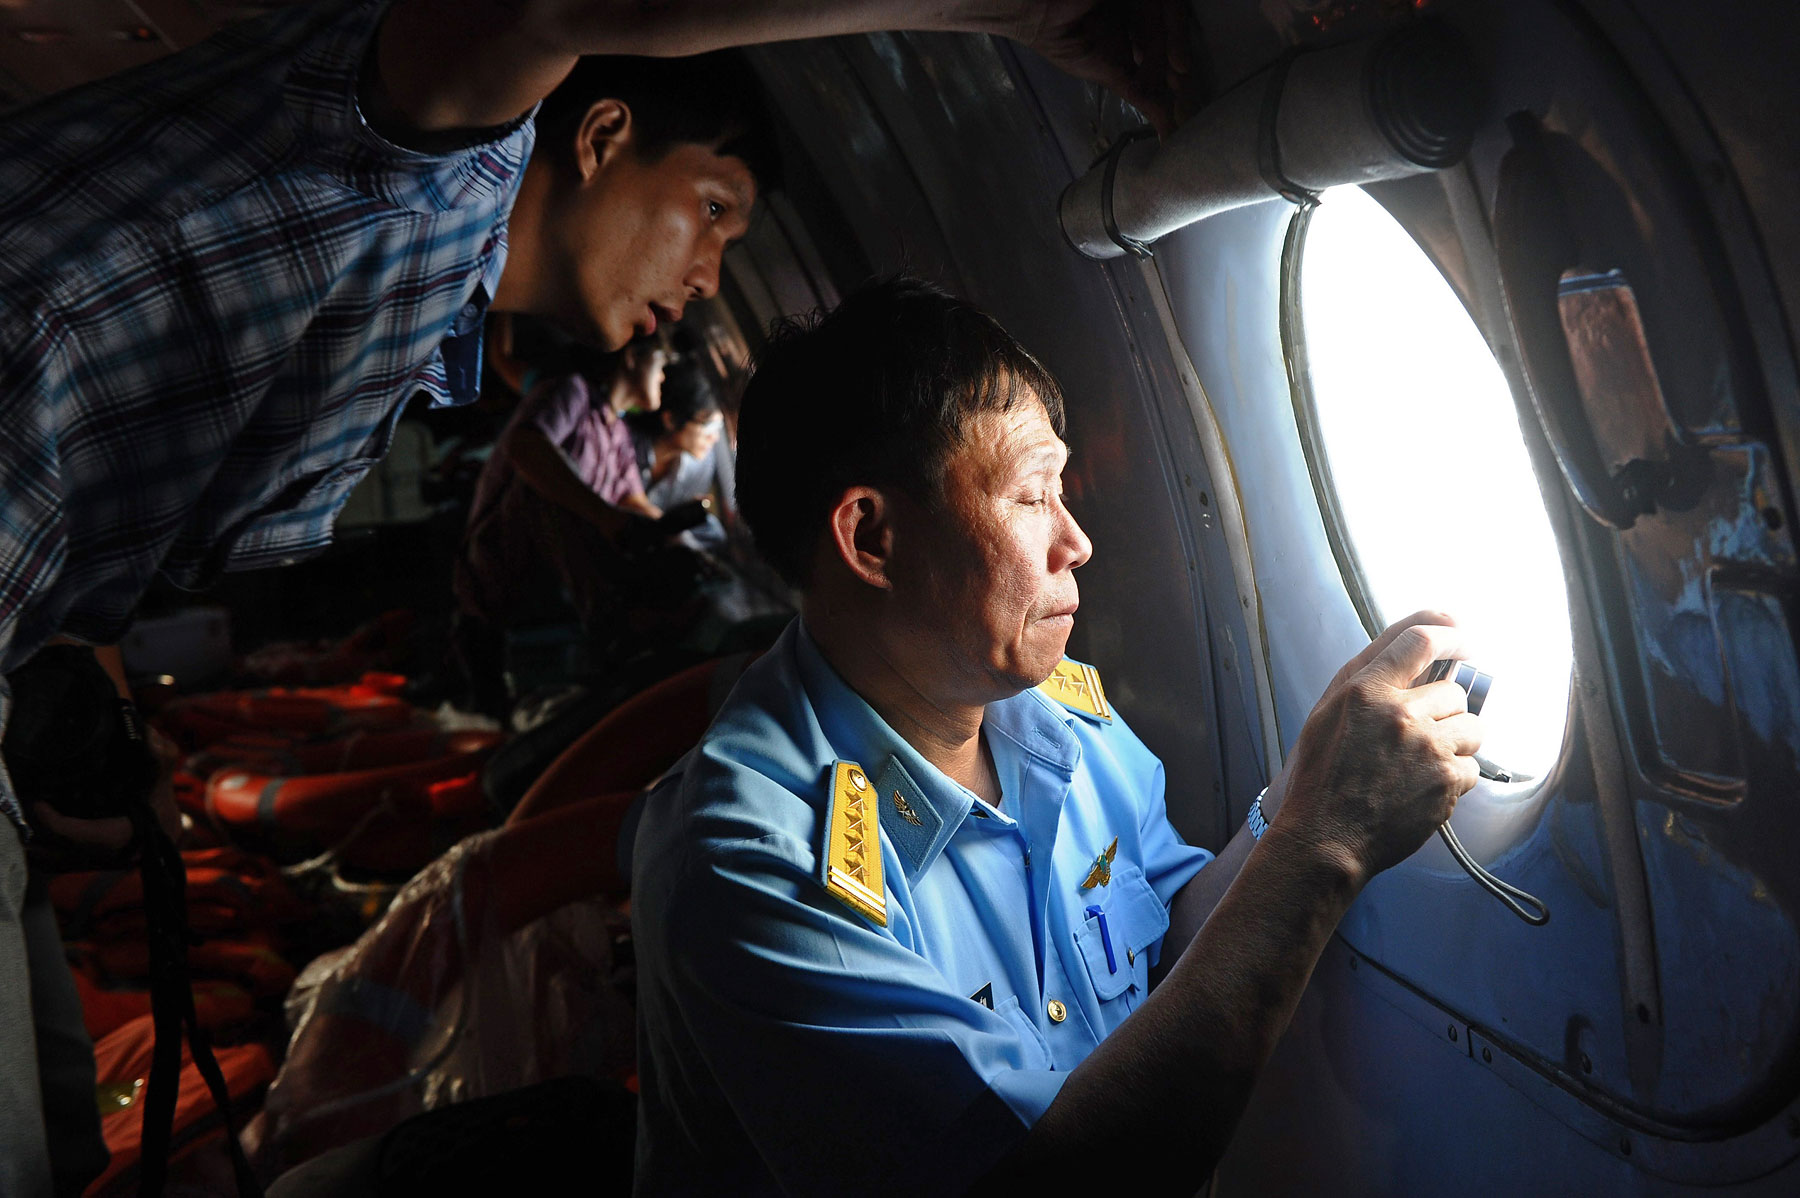 A Vietnamese Air Force officer, right, and a reporter look out the window during search operations over the southern seas off Vietnam on March 9, 2014.